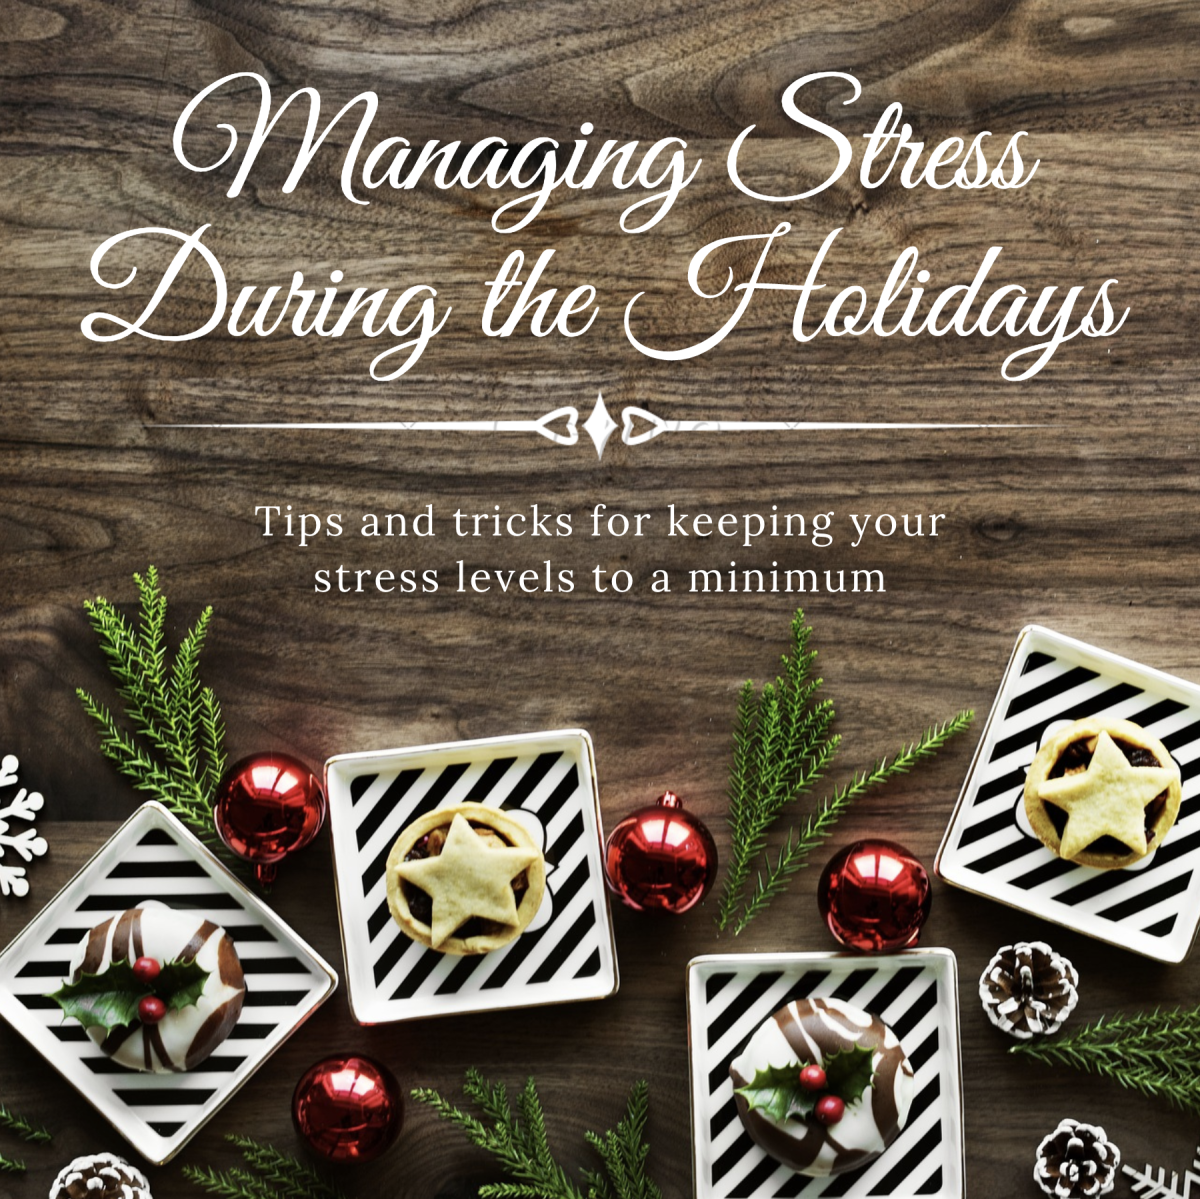 How to Manage and Lower Your Stress During the Holiday Season